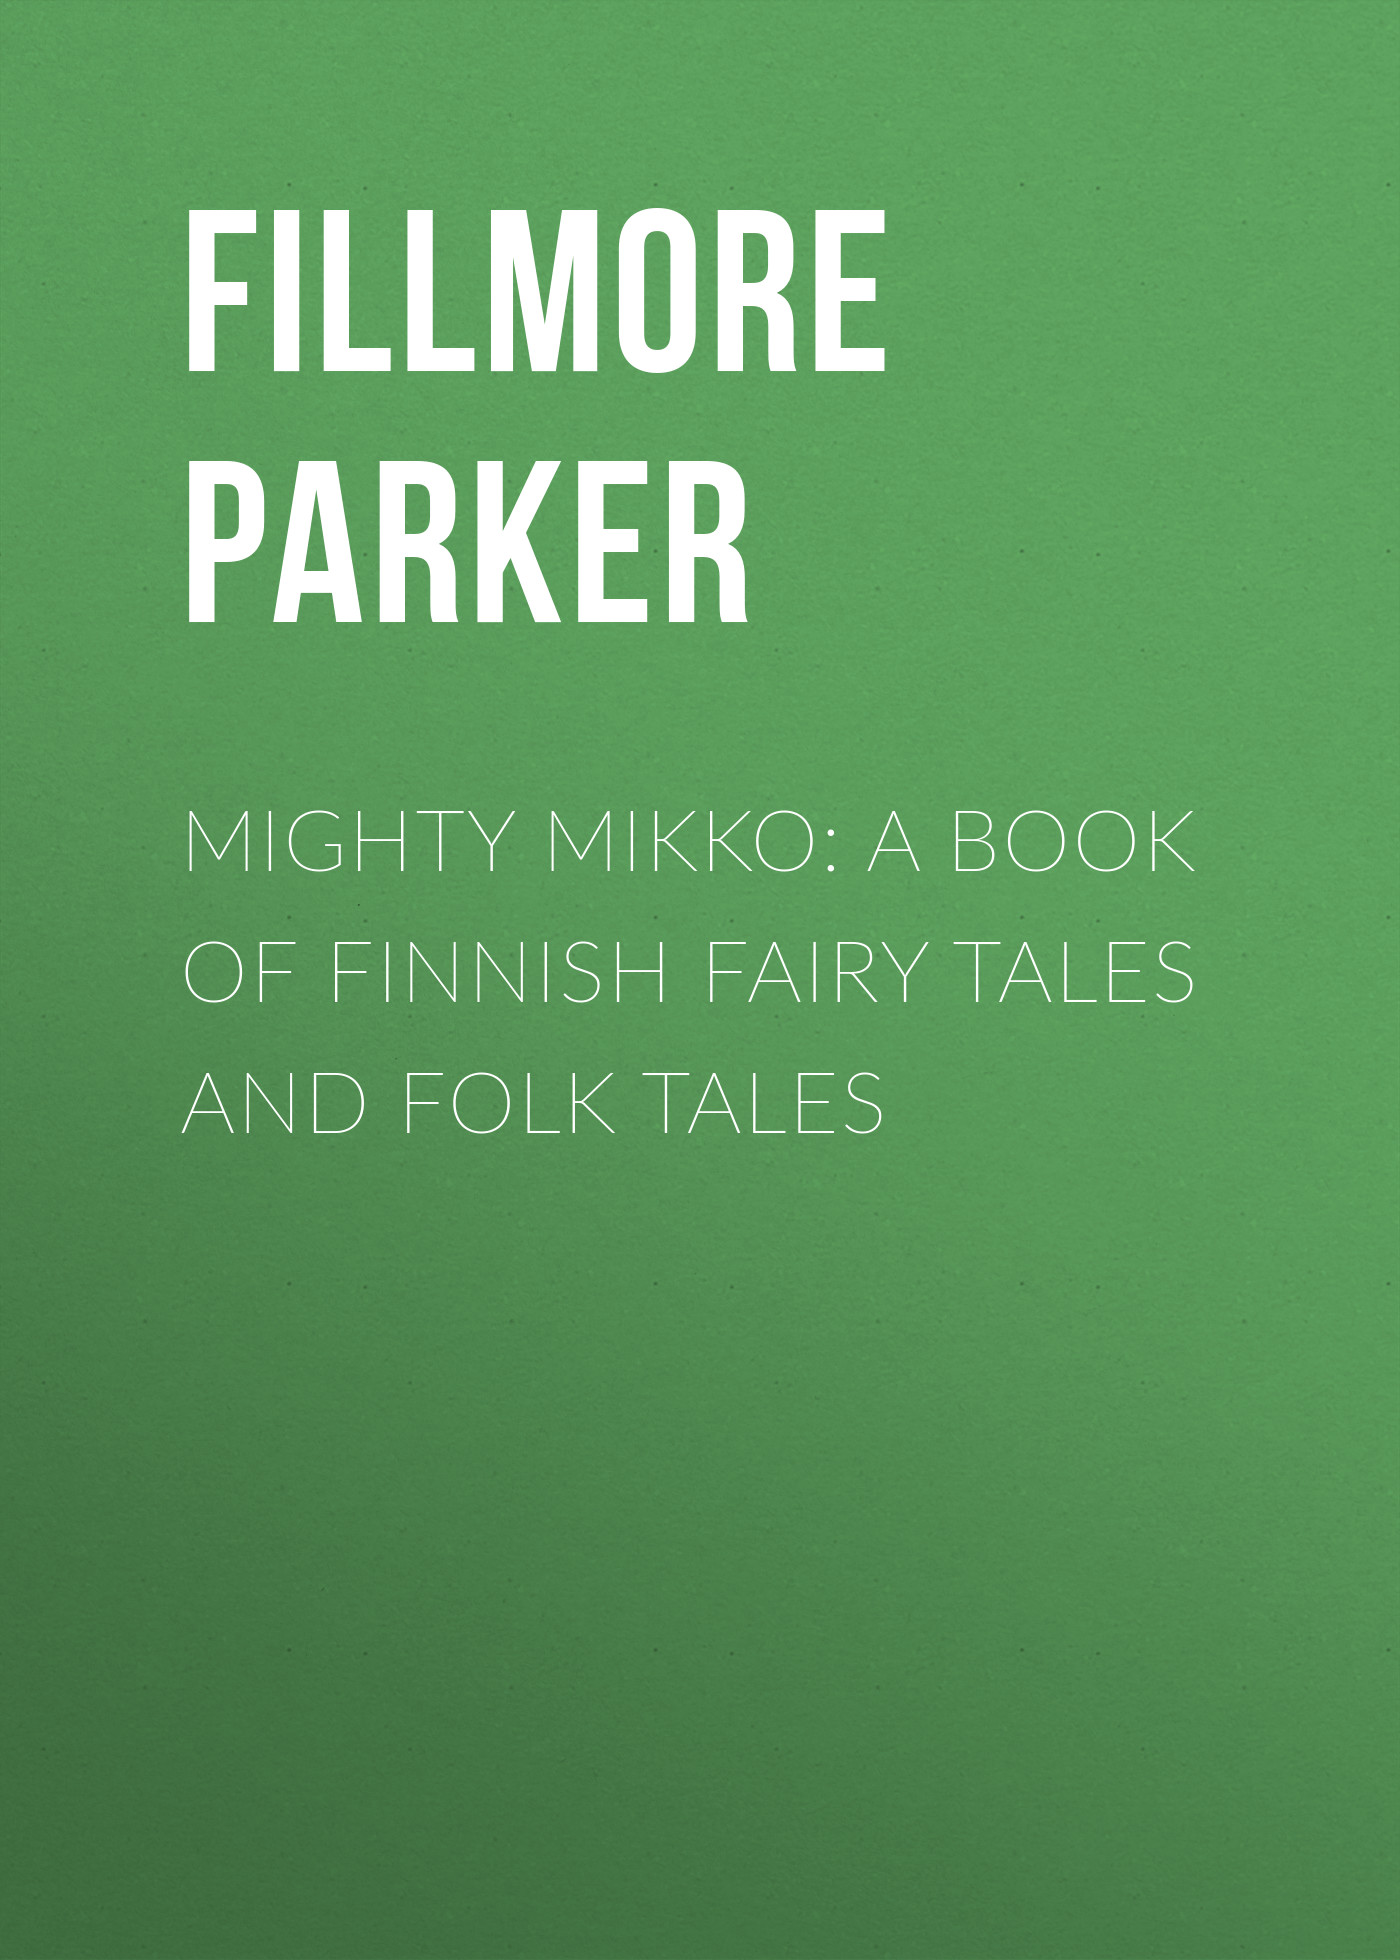 Fillmore Parker Mighty Mikko: A Book of Finnish Fairy Tales and Folk Tales nivea гель для душа спорт 250 мл